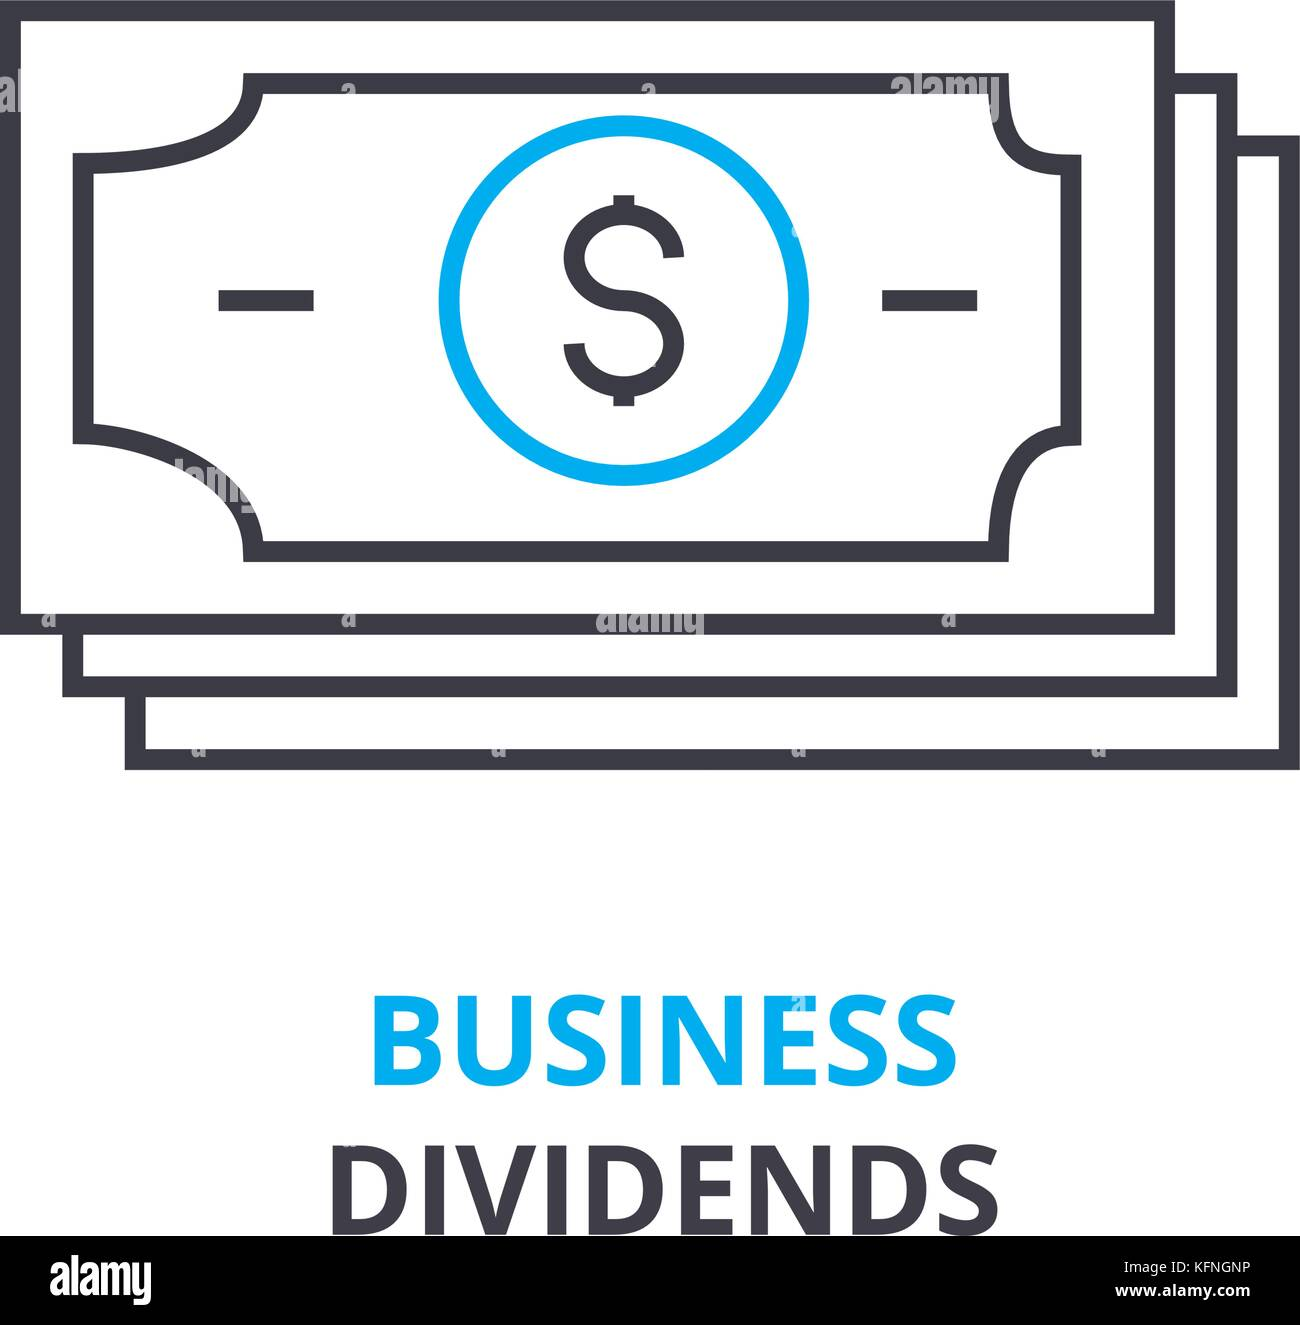 Business dividends concept outline icon linear sign thin line business dividends concept outline icon linear sign thin line pictogram logo flat vector illustration ccuart Images